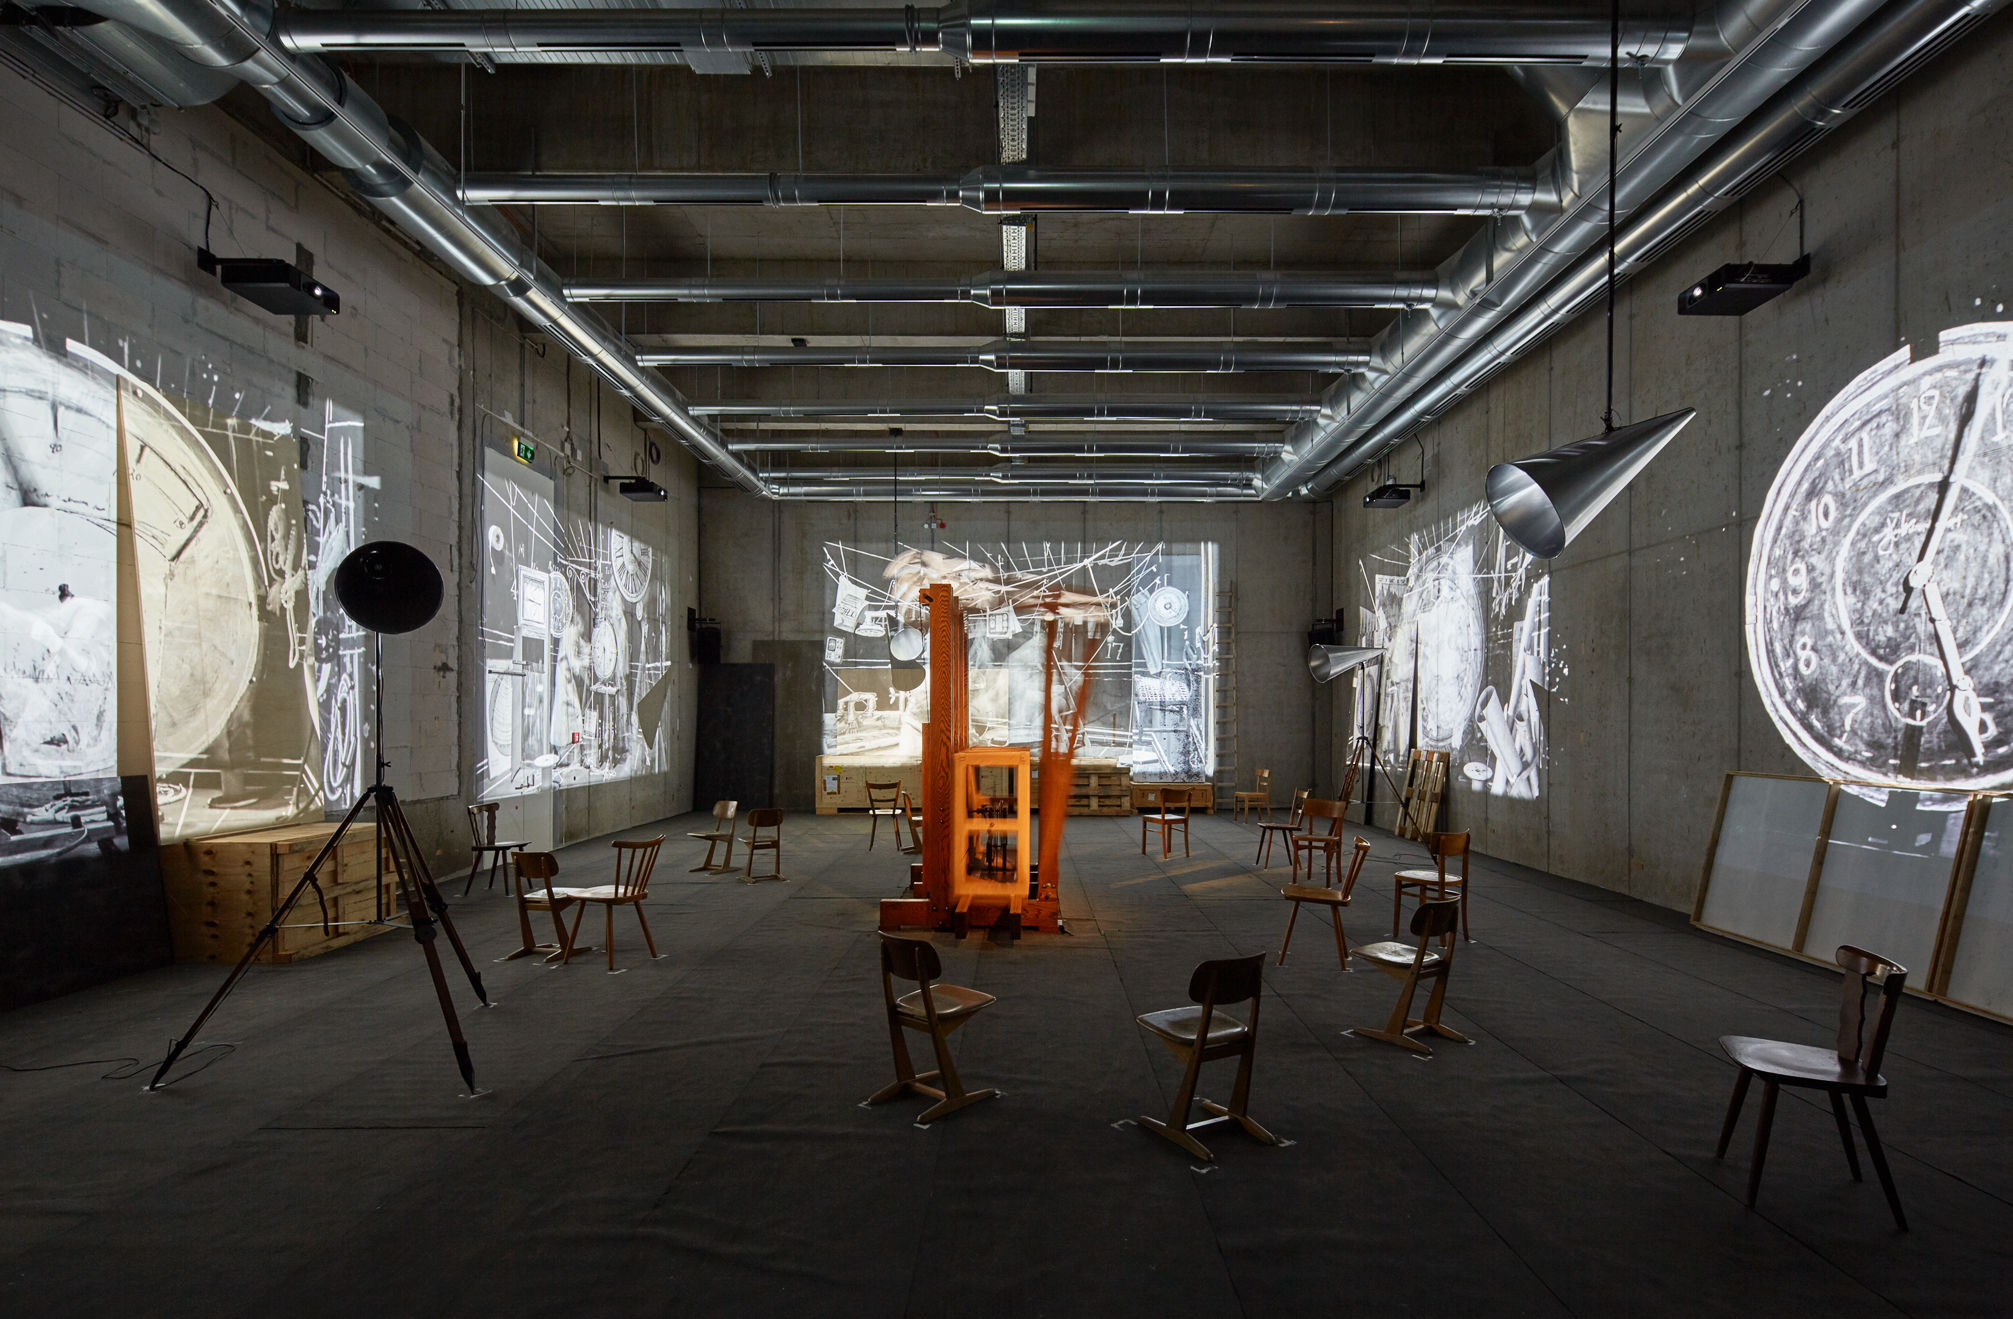 © William Kentridge Foto: Kunsthalle Mannheim / Rainer Diehl